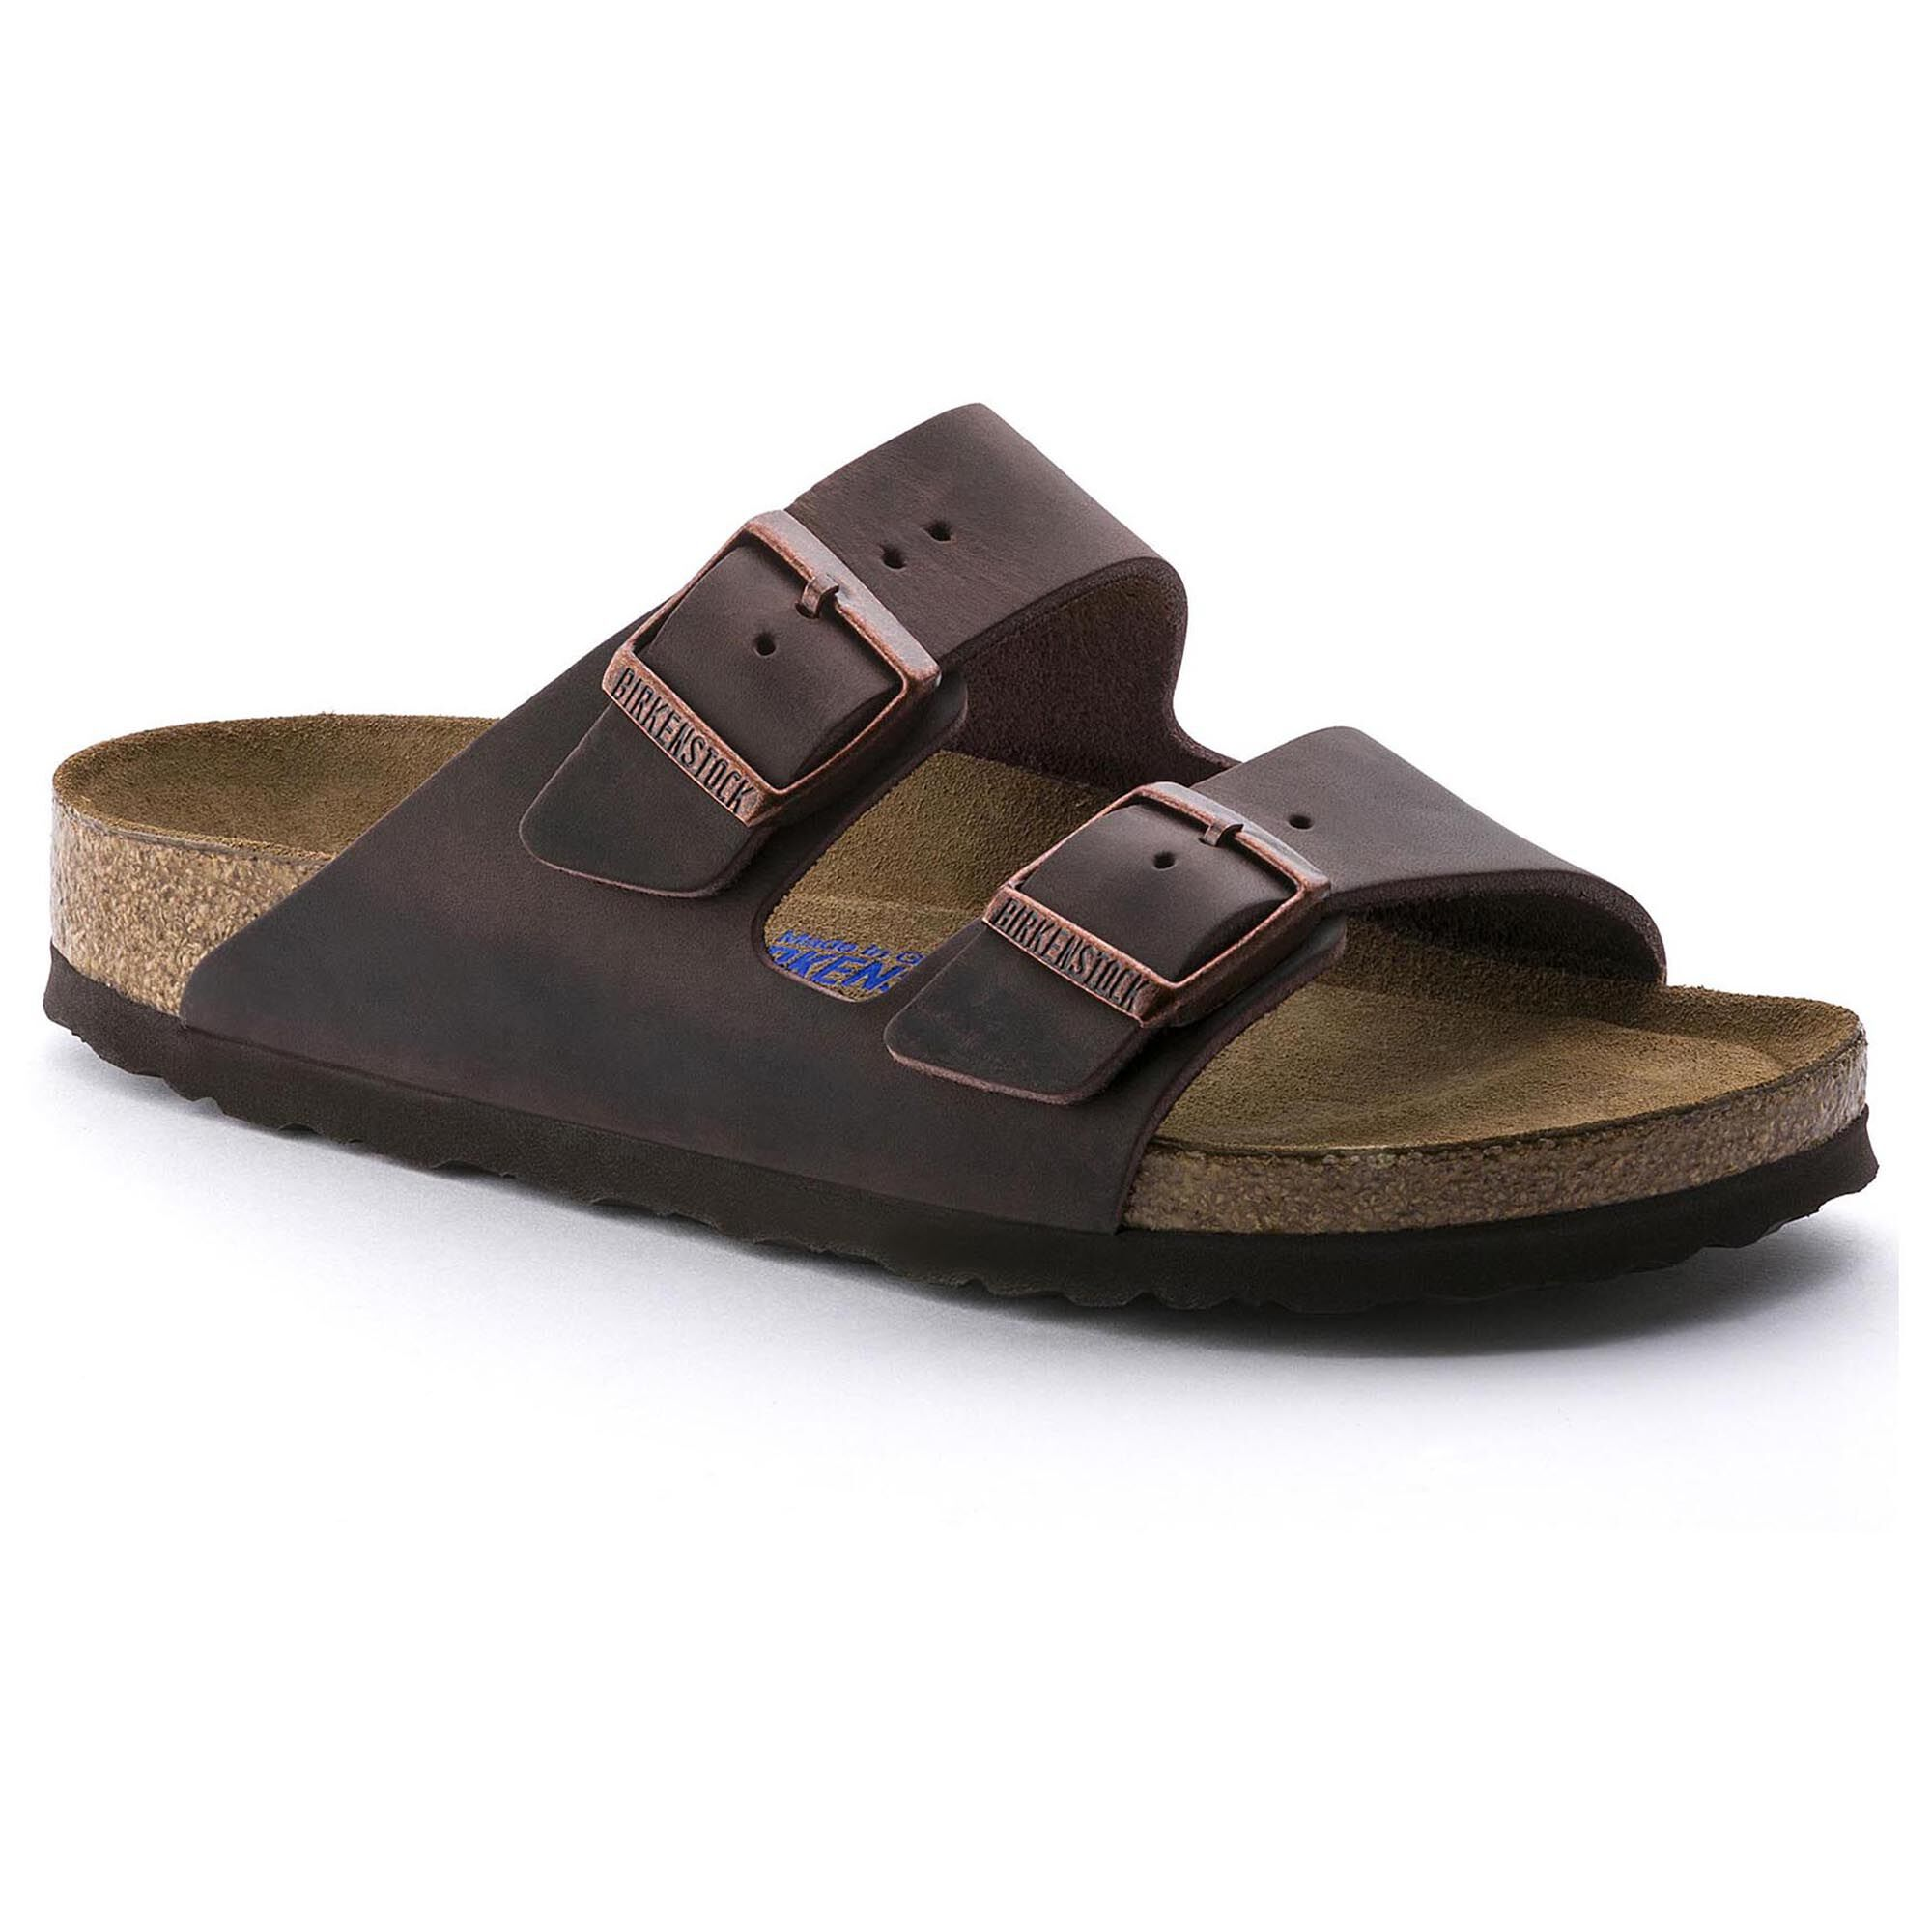 Details about Birkenstock Boston Brown Natural Leather Soft Bedding 36 48 Footbed Narrow & Normal show original title